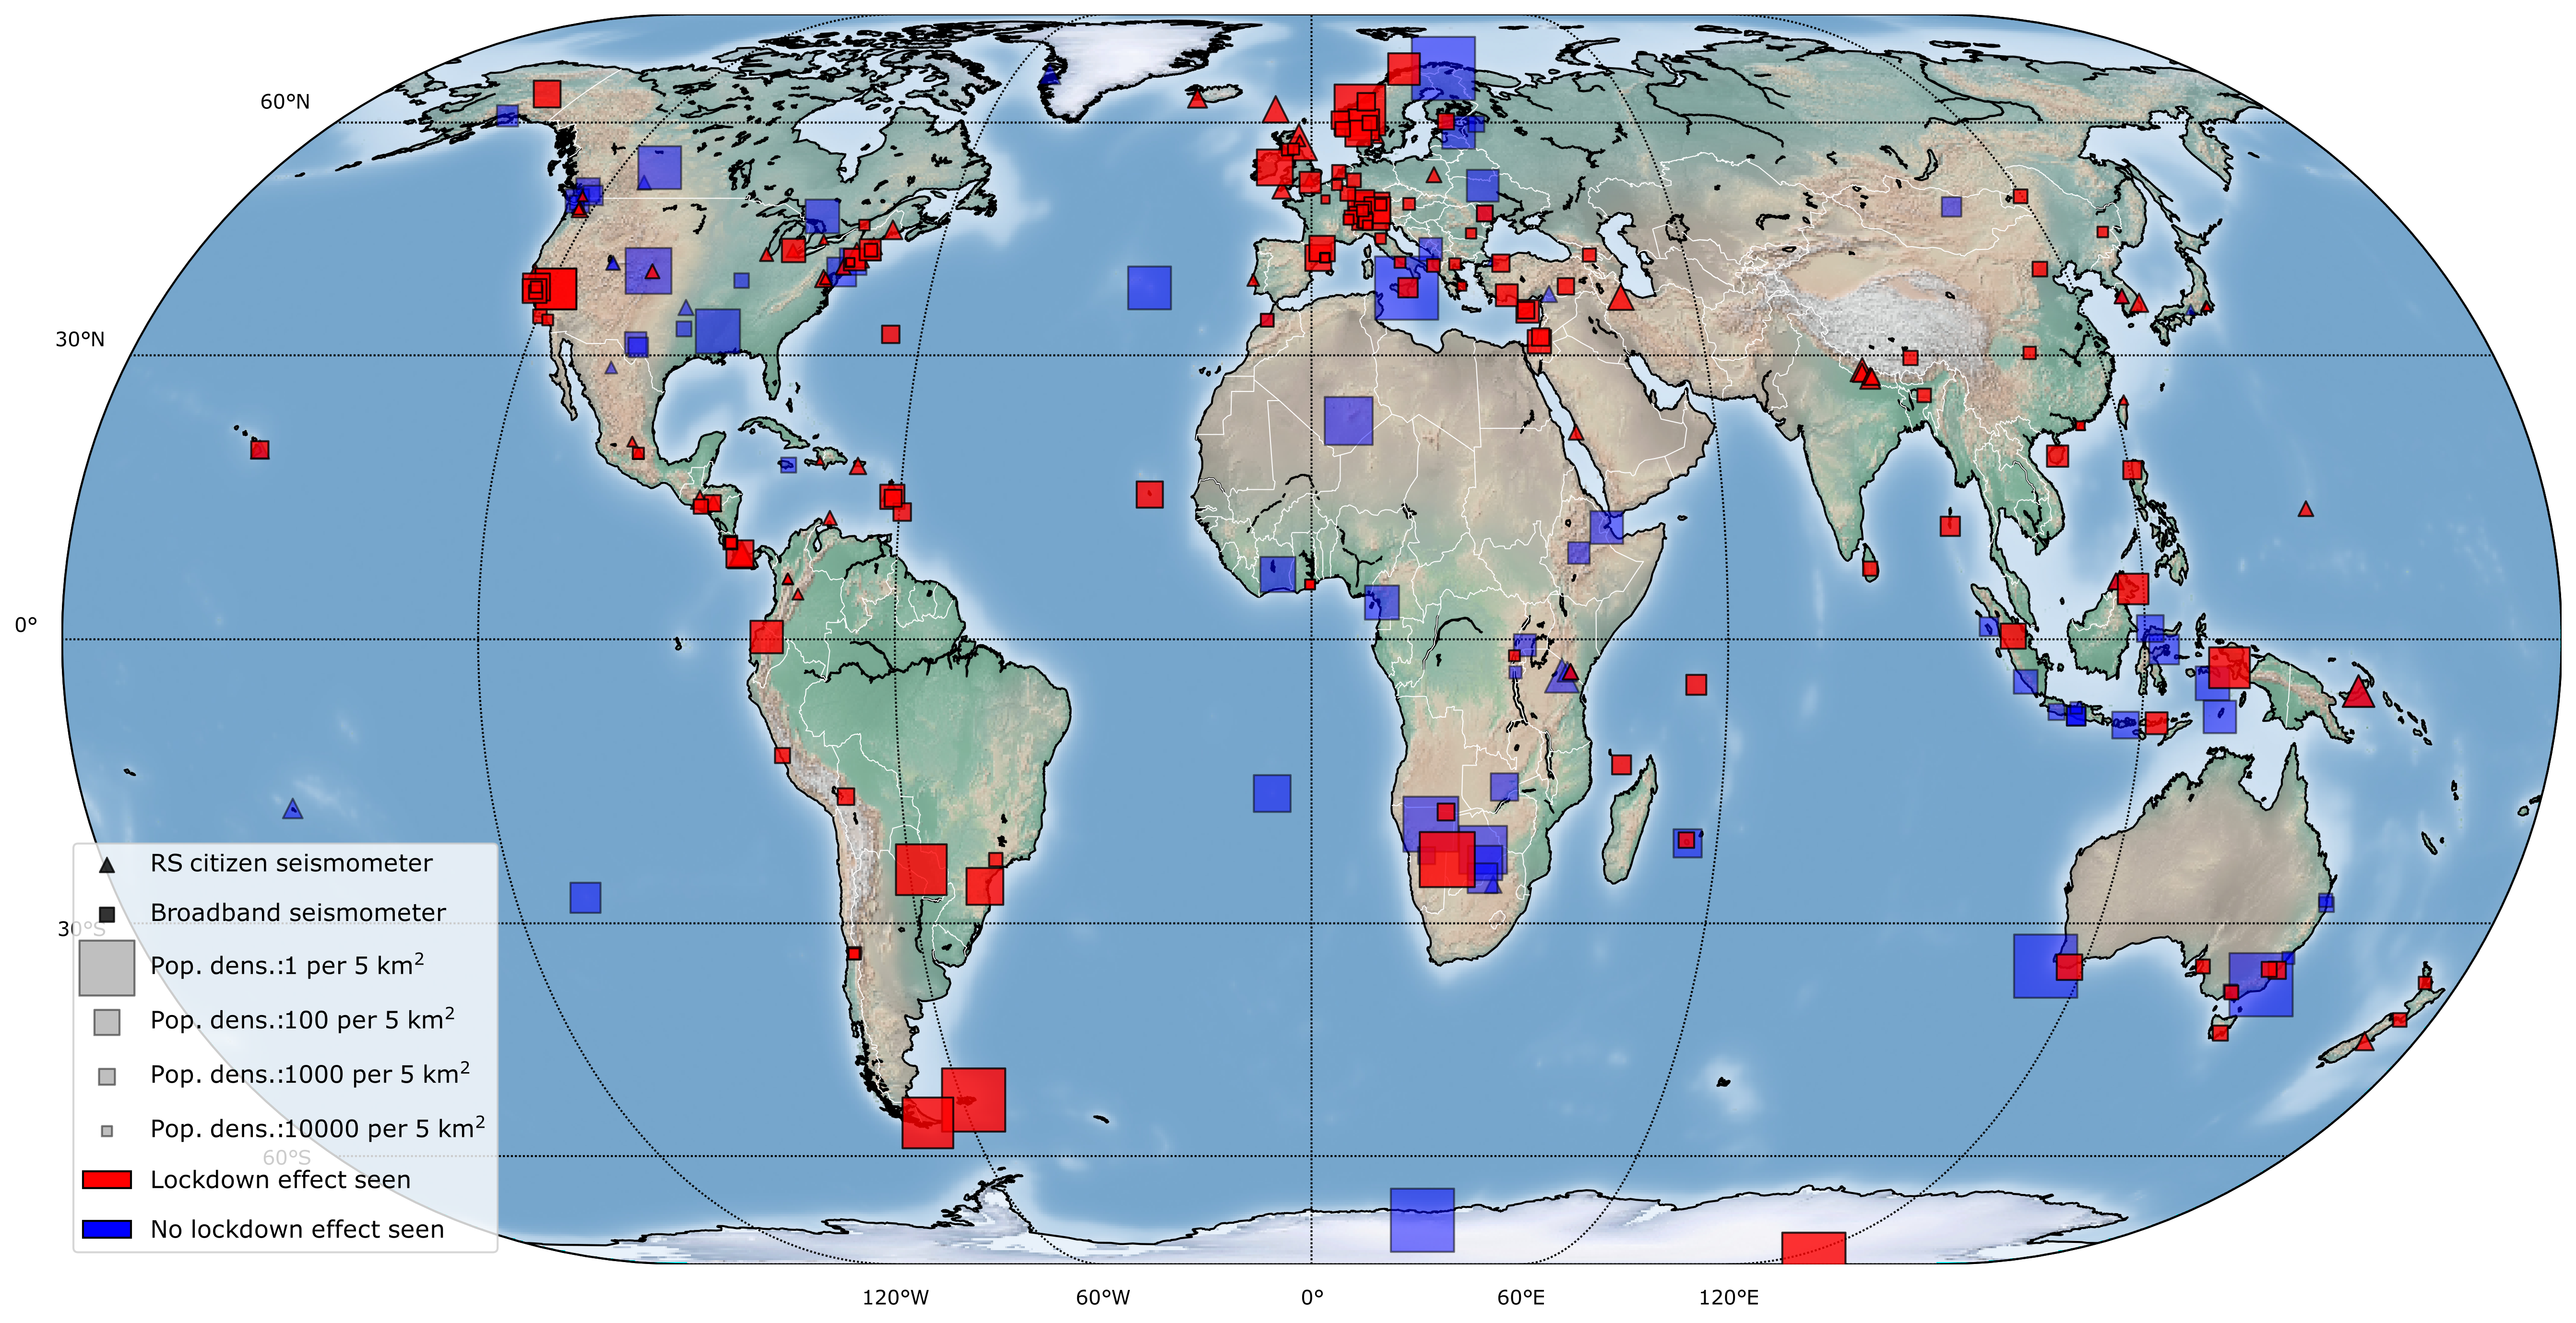 Locations of the 268 global seismic stations